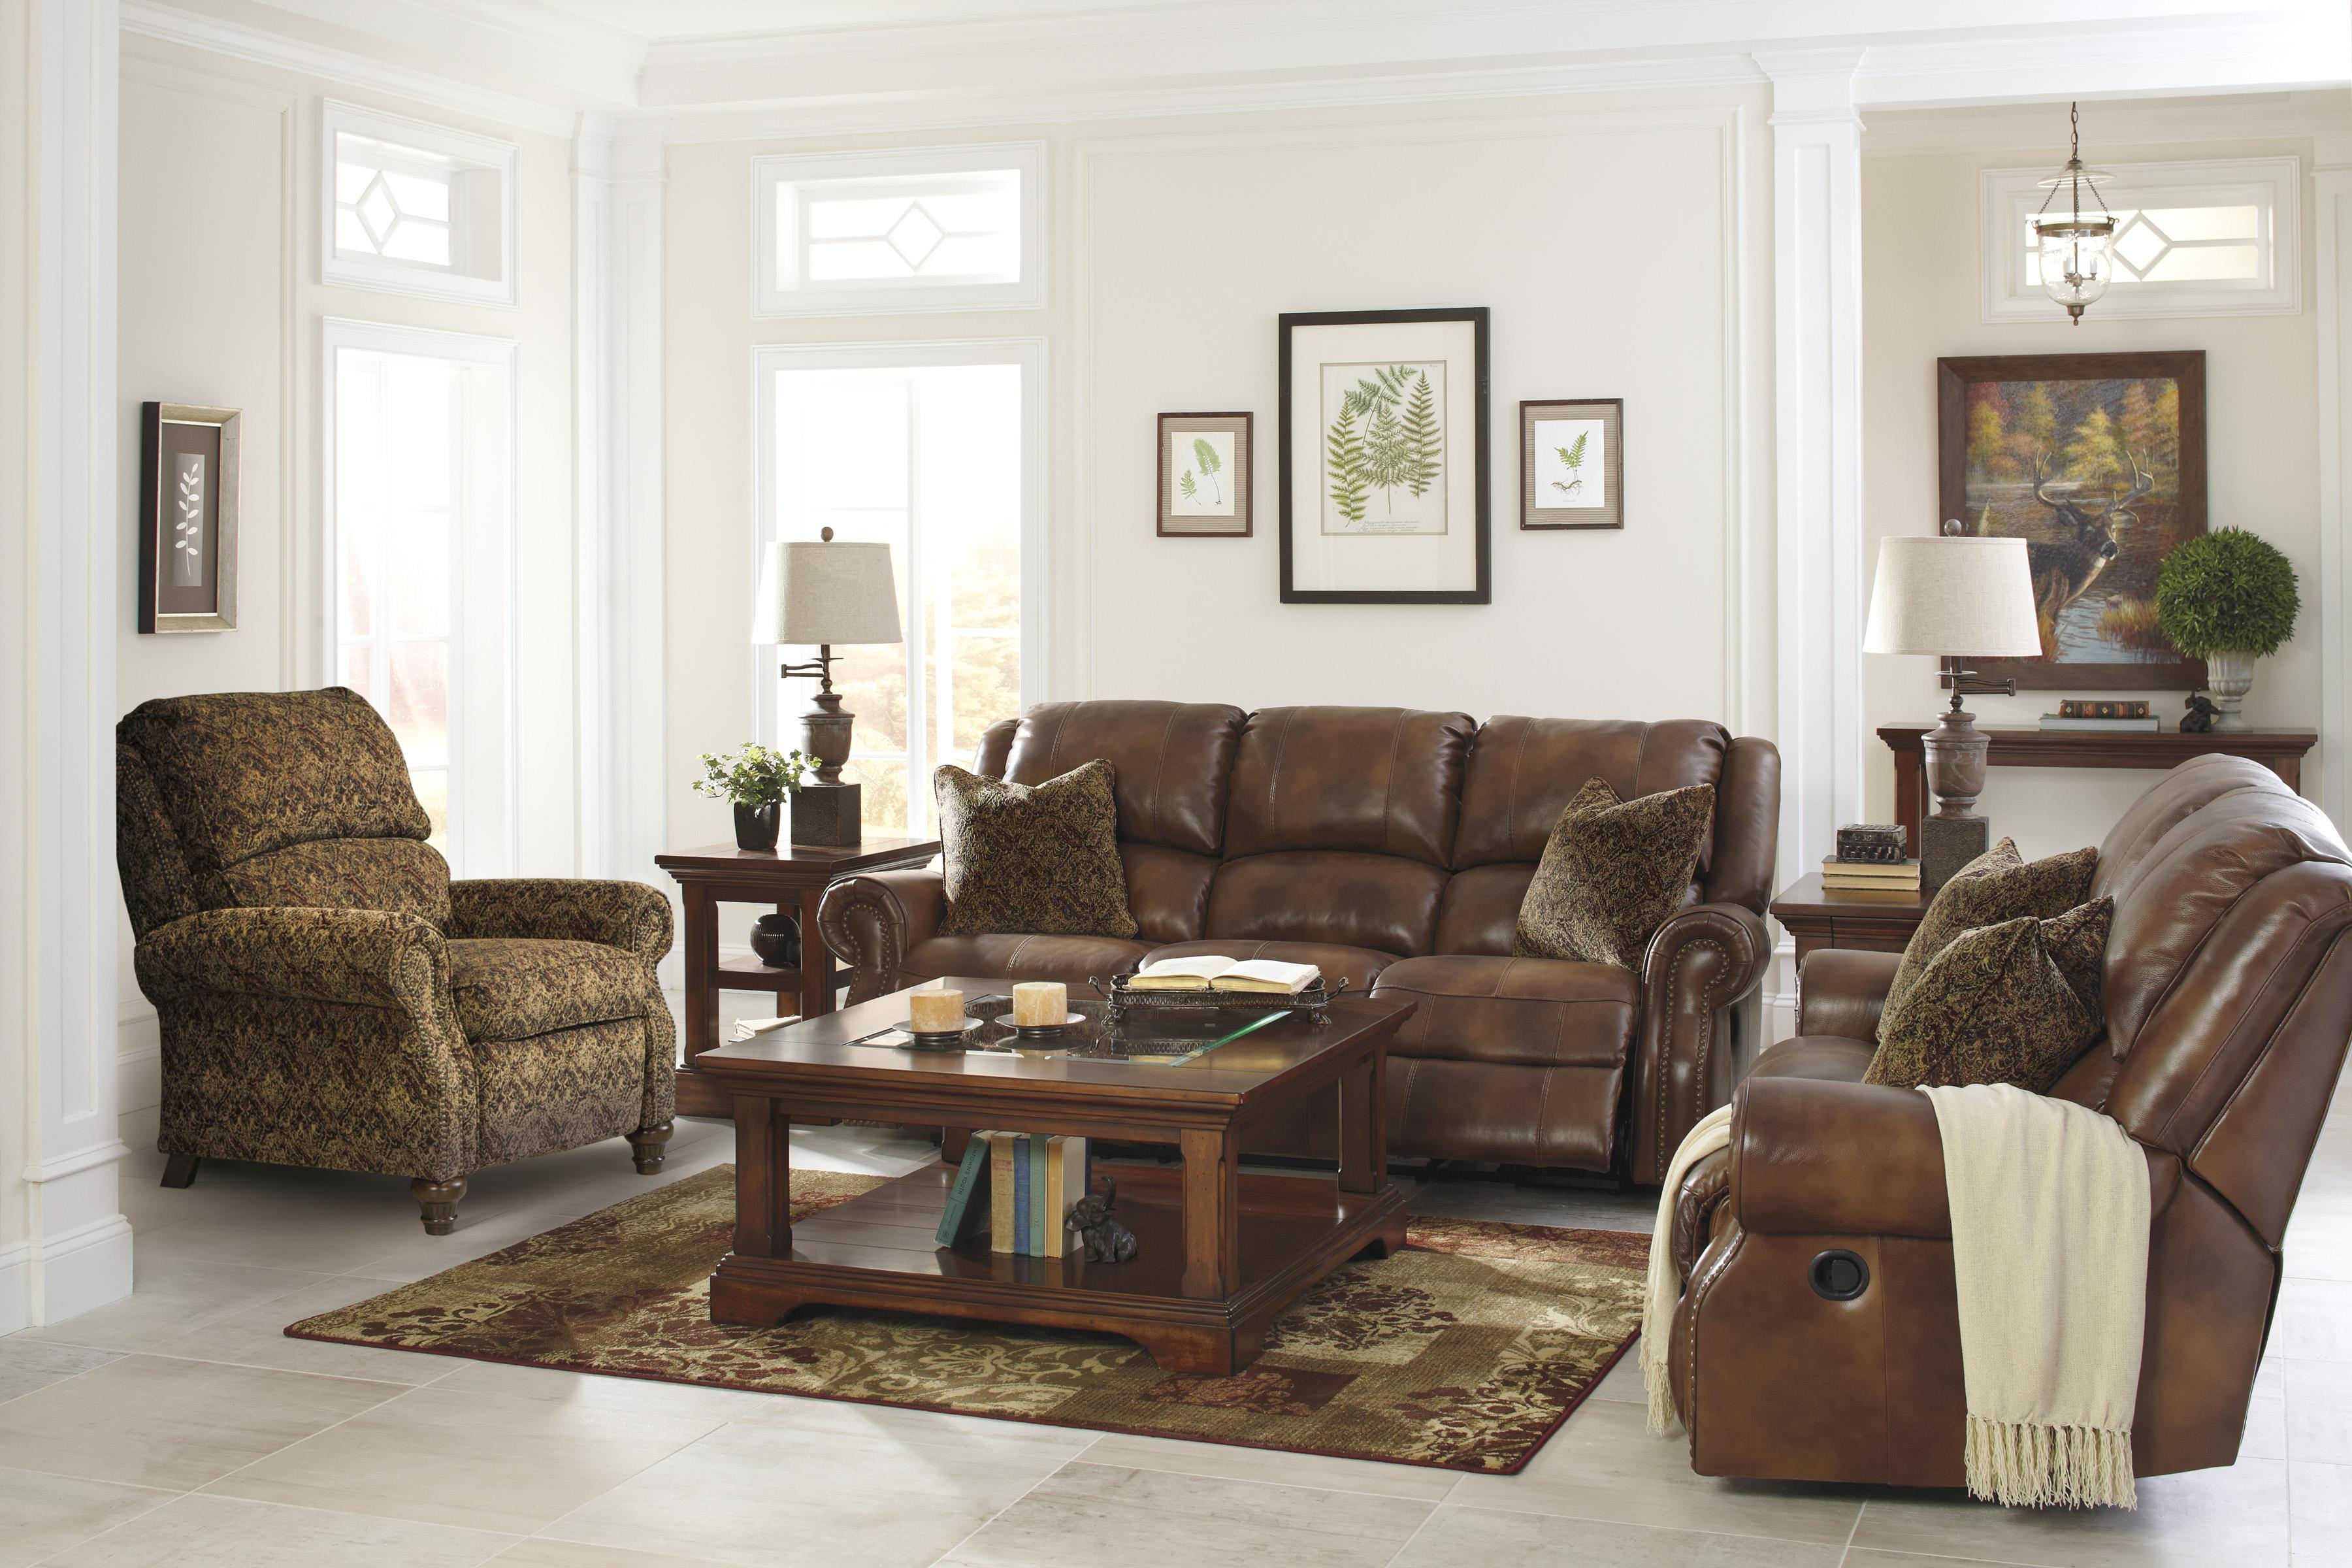 Signature Design by Ashley Walworth Reclining Living Room Group - Item Number: U78001 Living Room Group 6